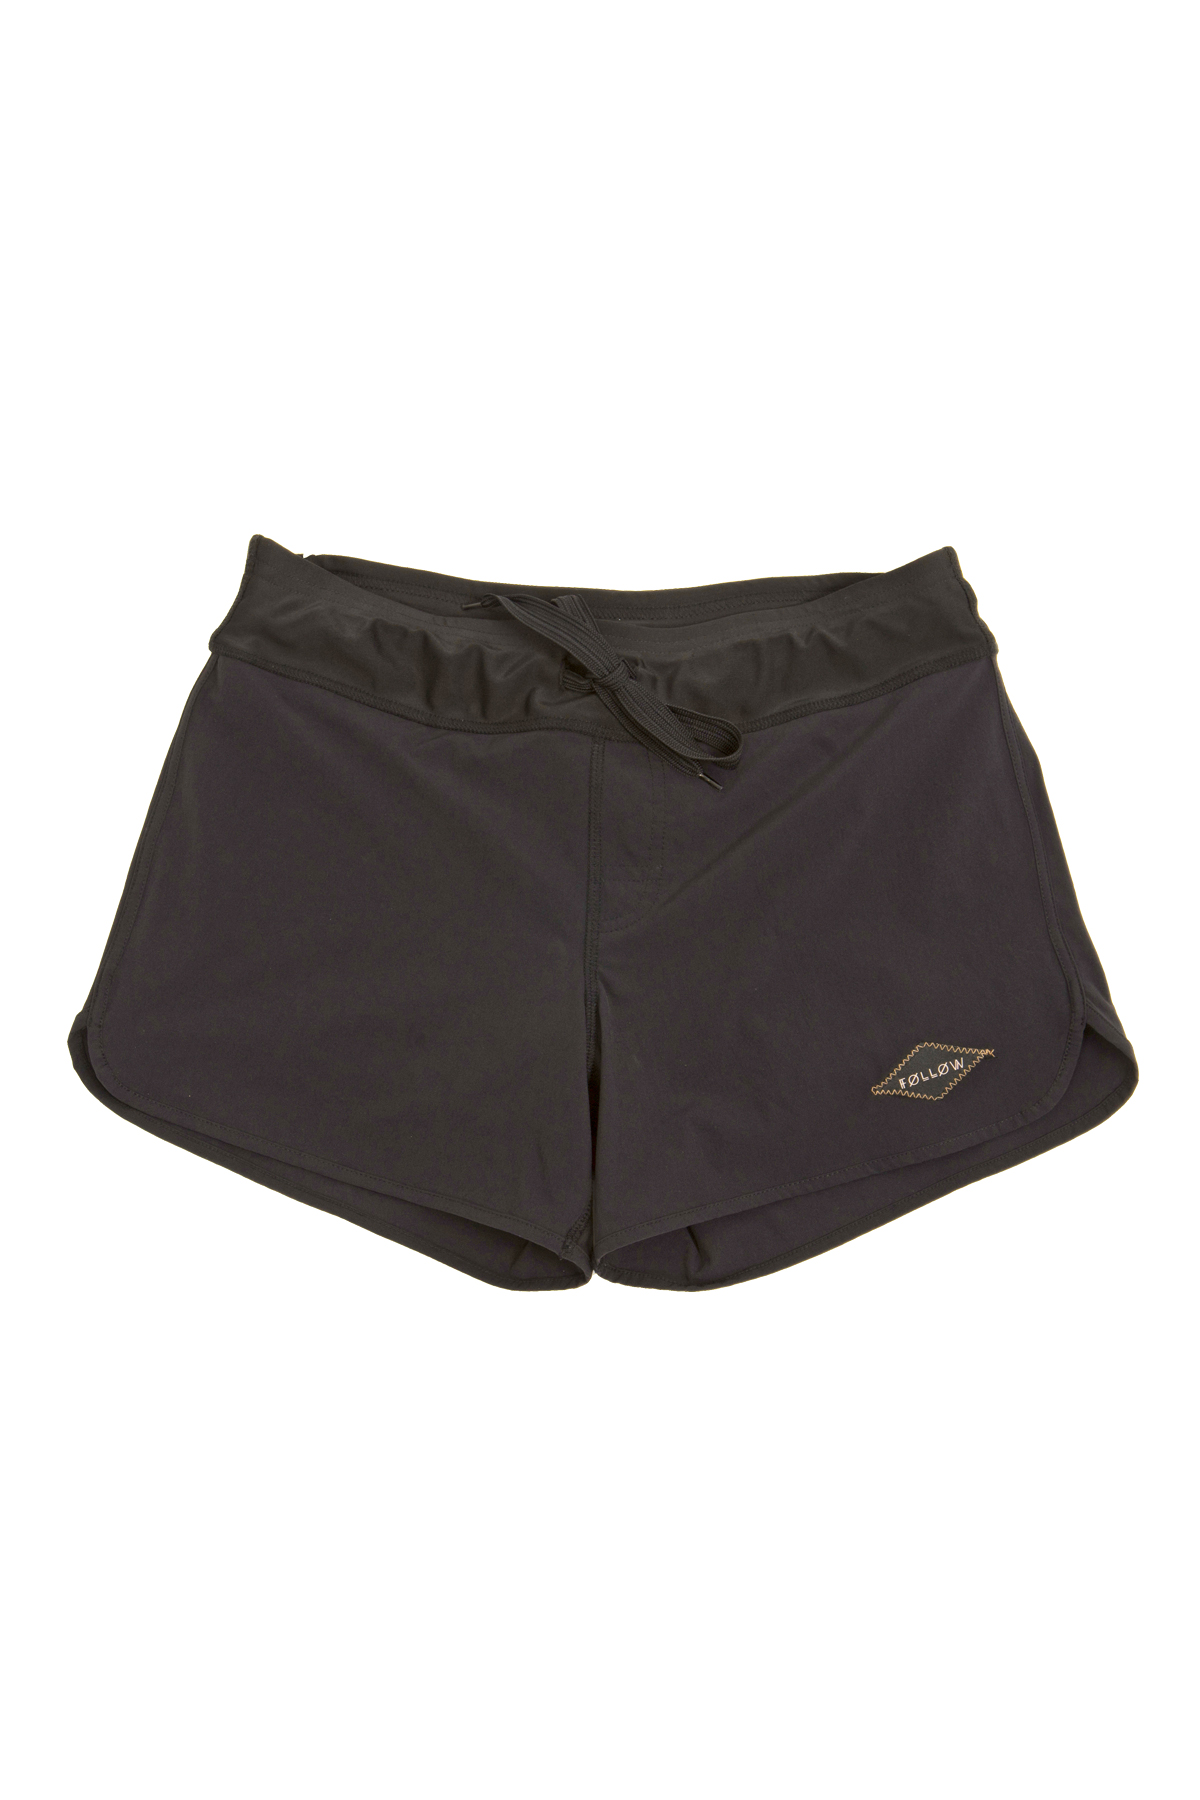 PHARAOH RIDE SHORTS - BLACK FOLLOW 2019